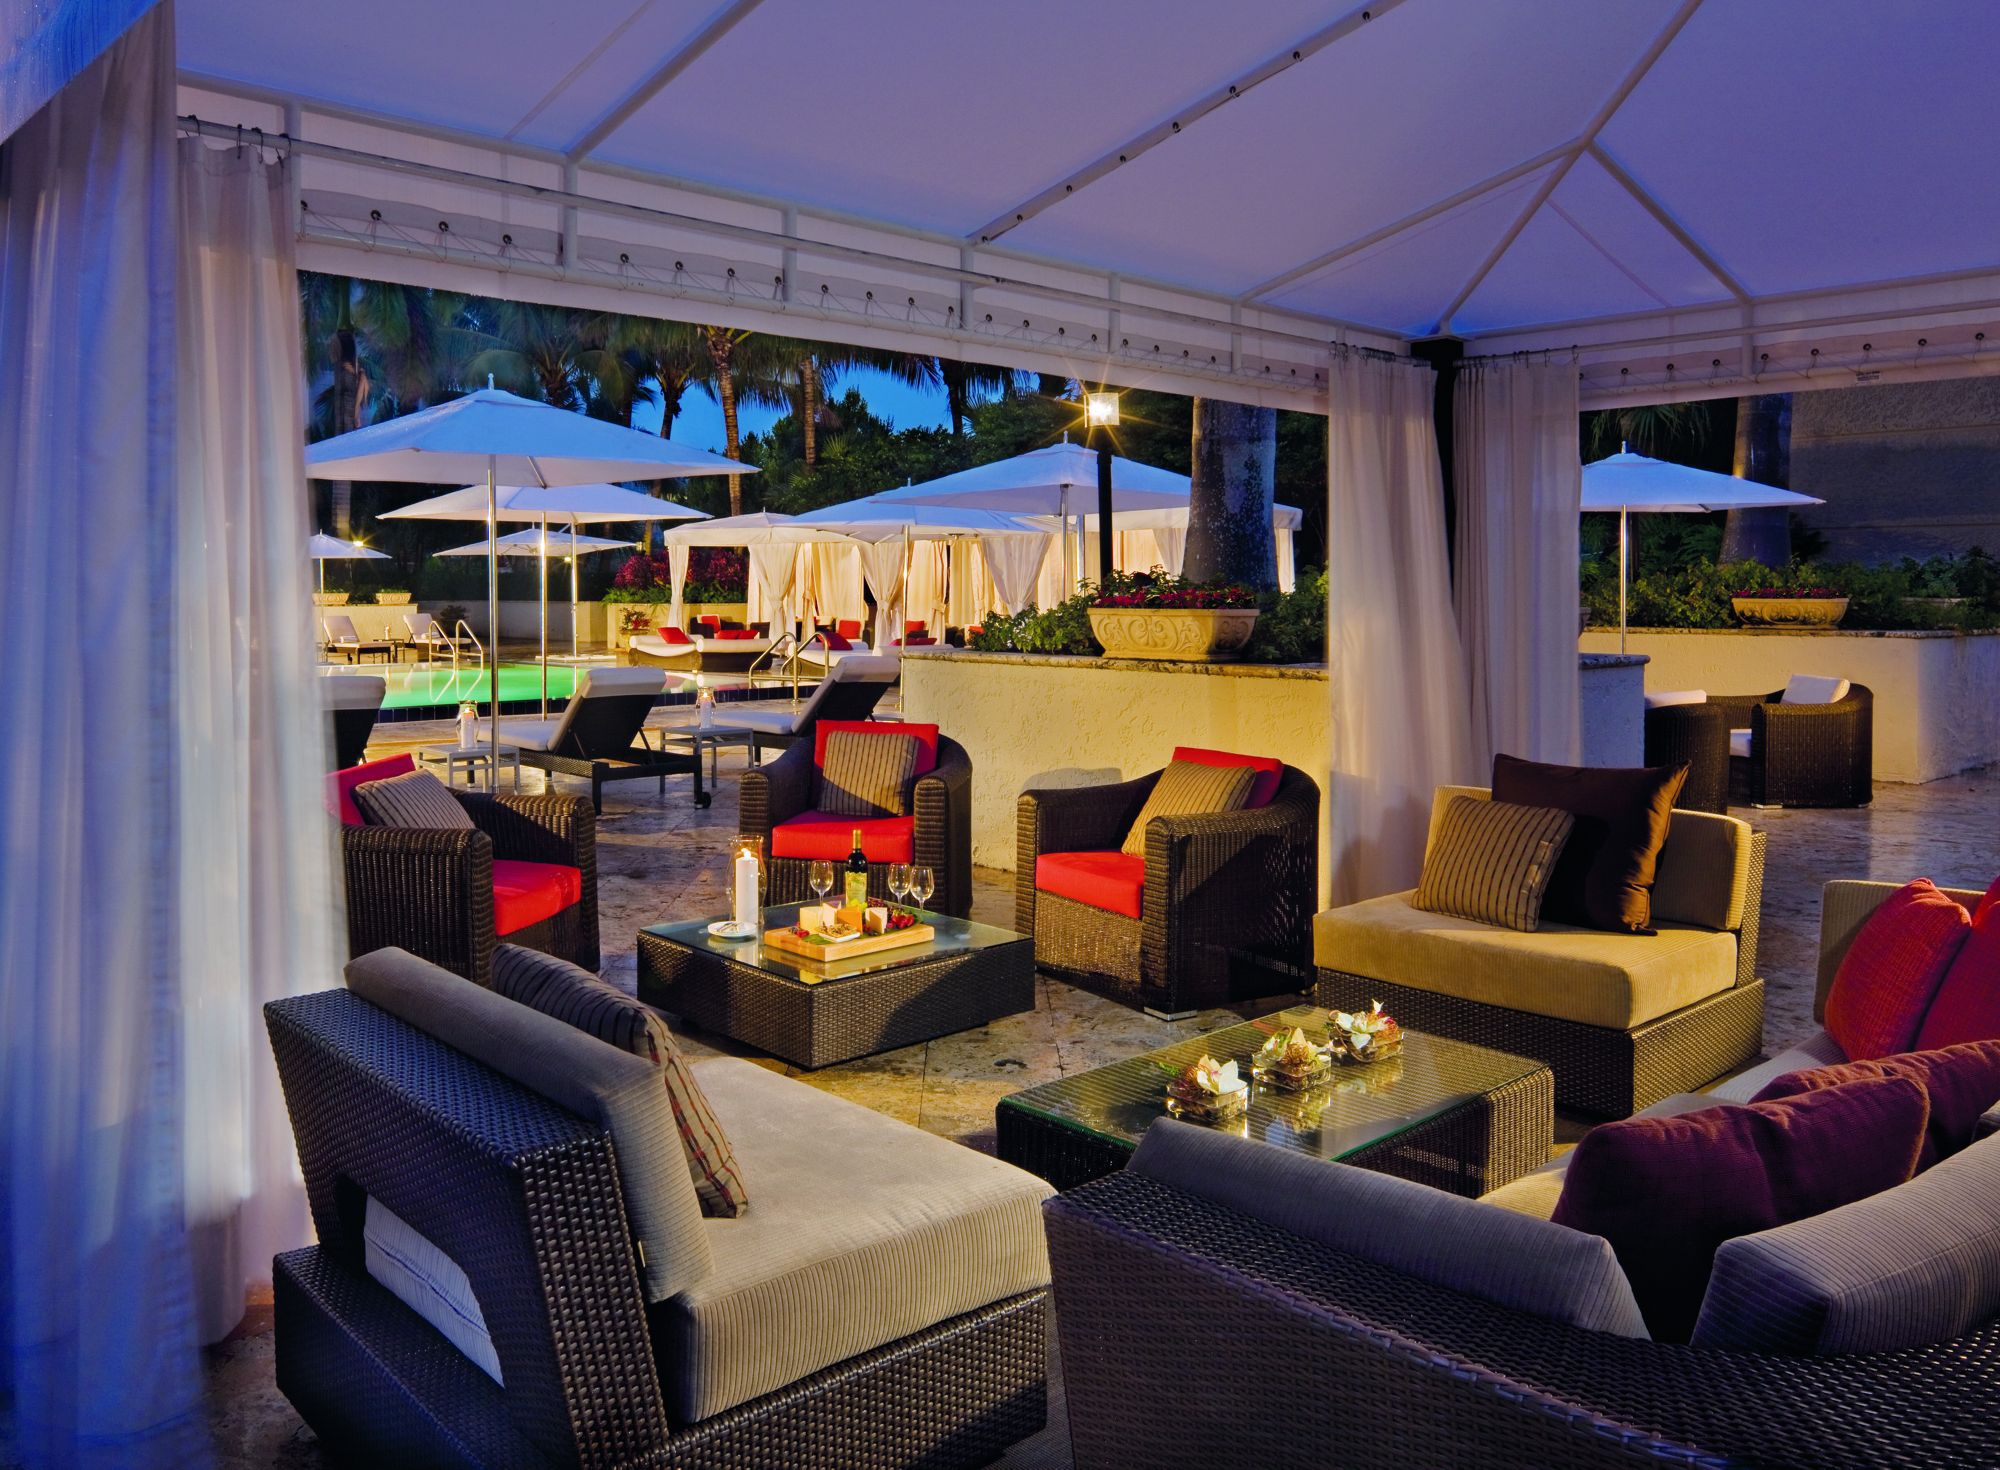 Private poolside pavilions offer comfortable seating for group gatherings.